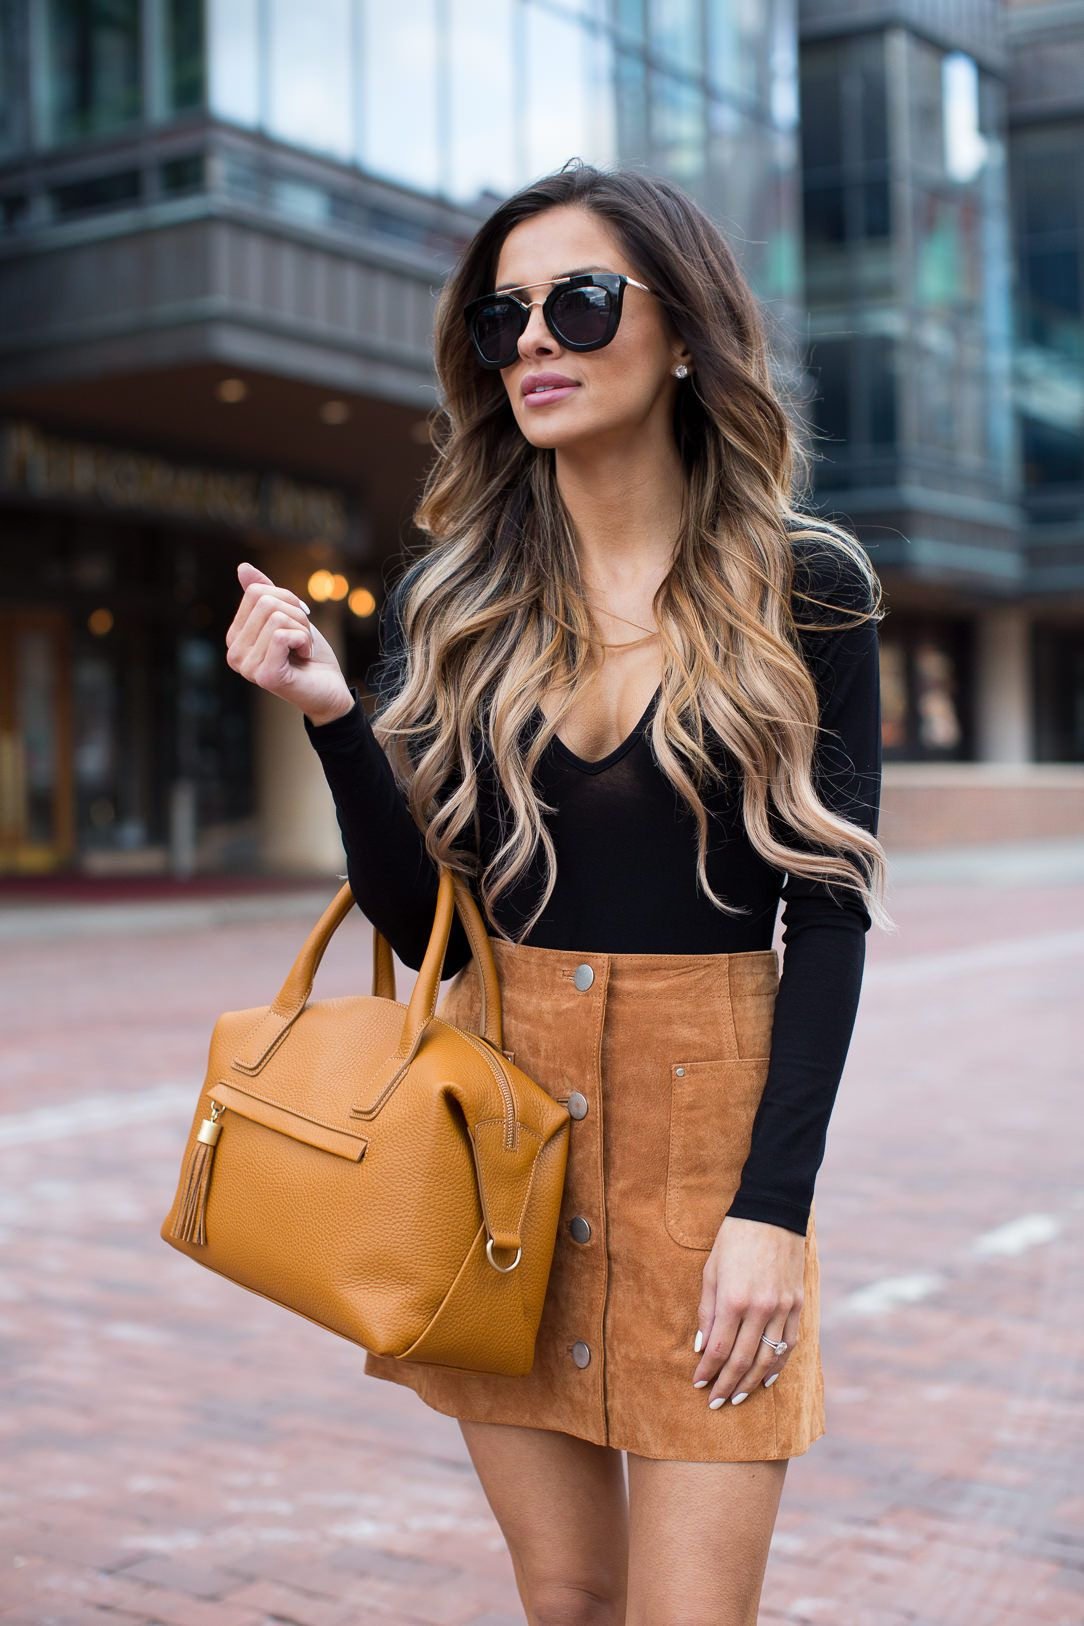 2019 year for women- Skirt casual outfits photo